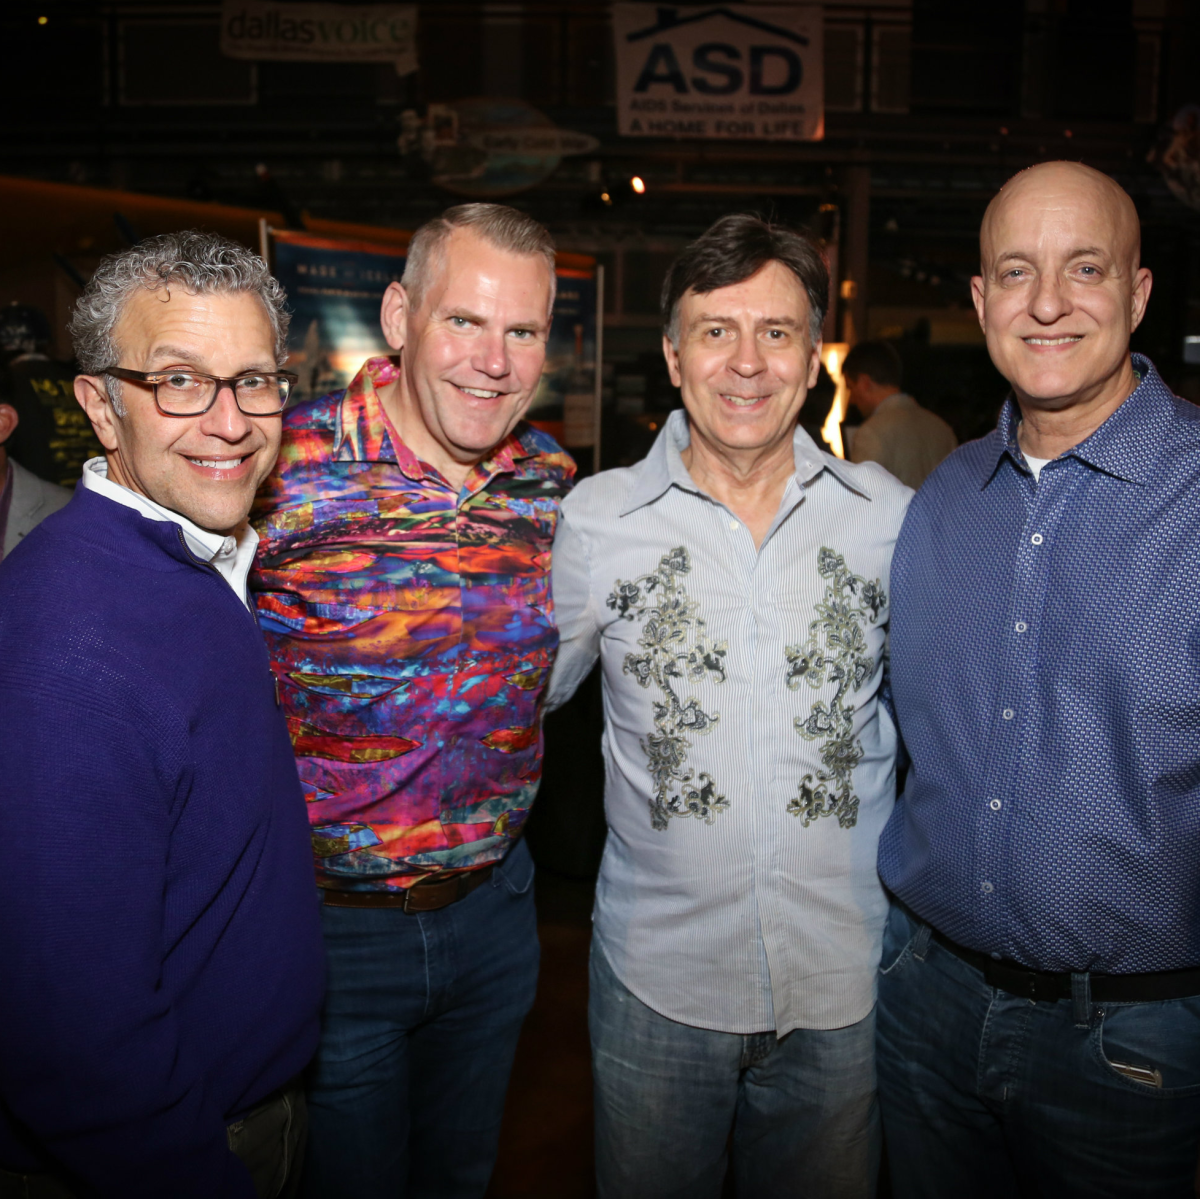 Dan Cohen, Will Dooley, Don Geiser, Marty Ruben